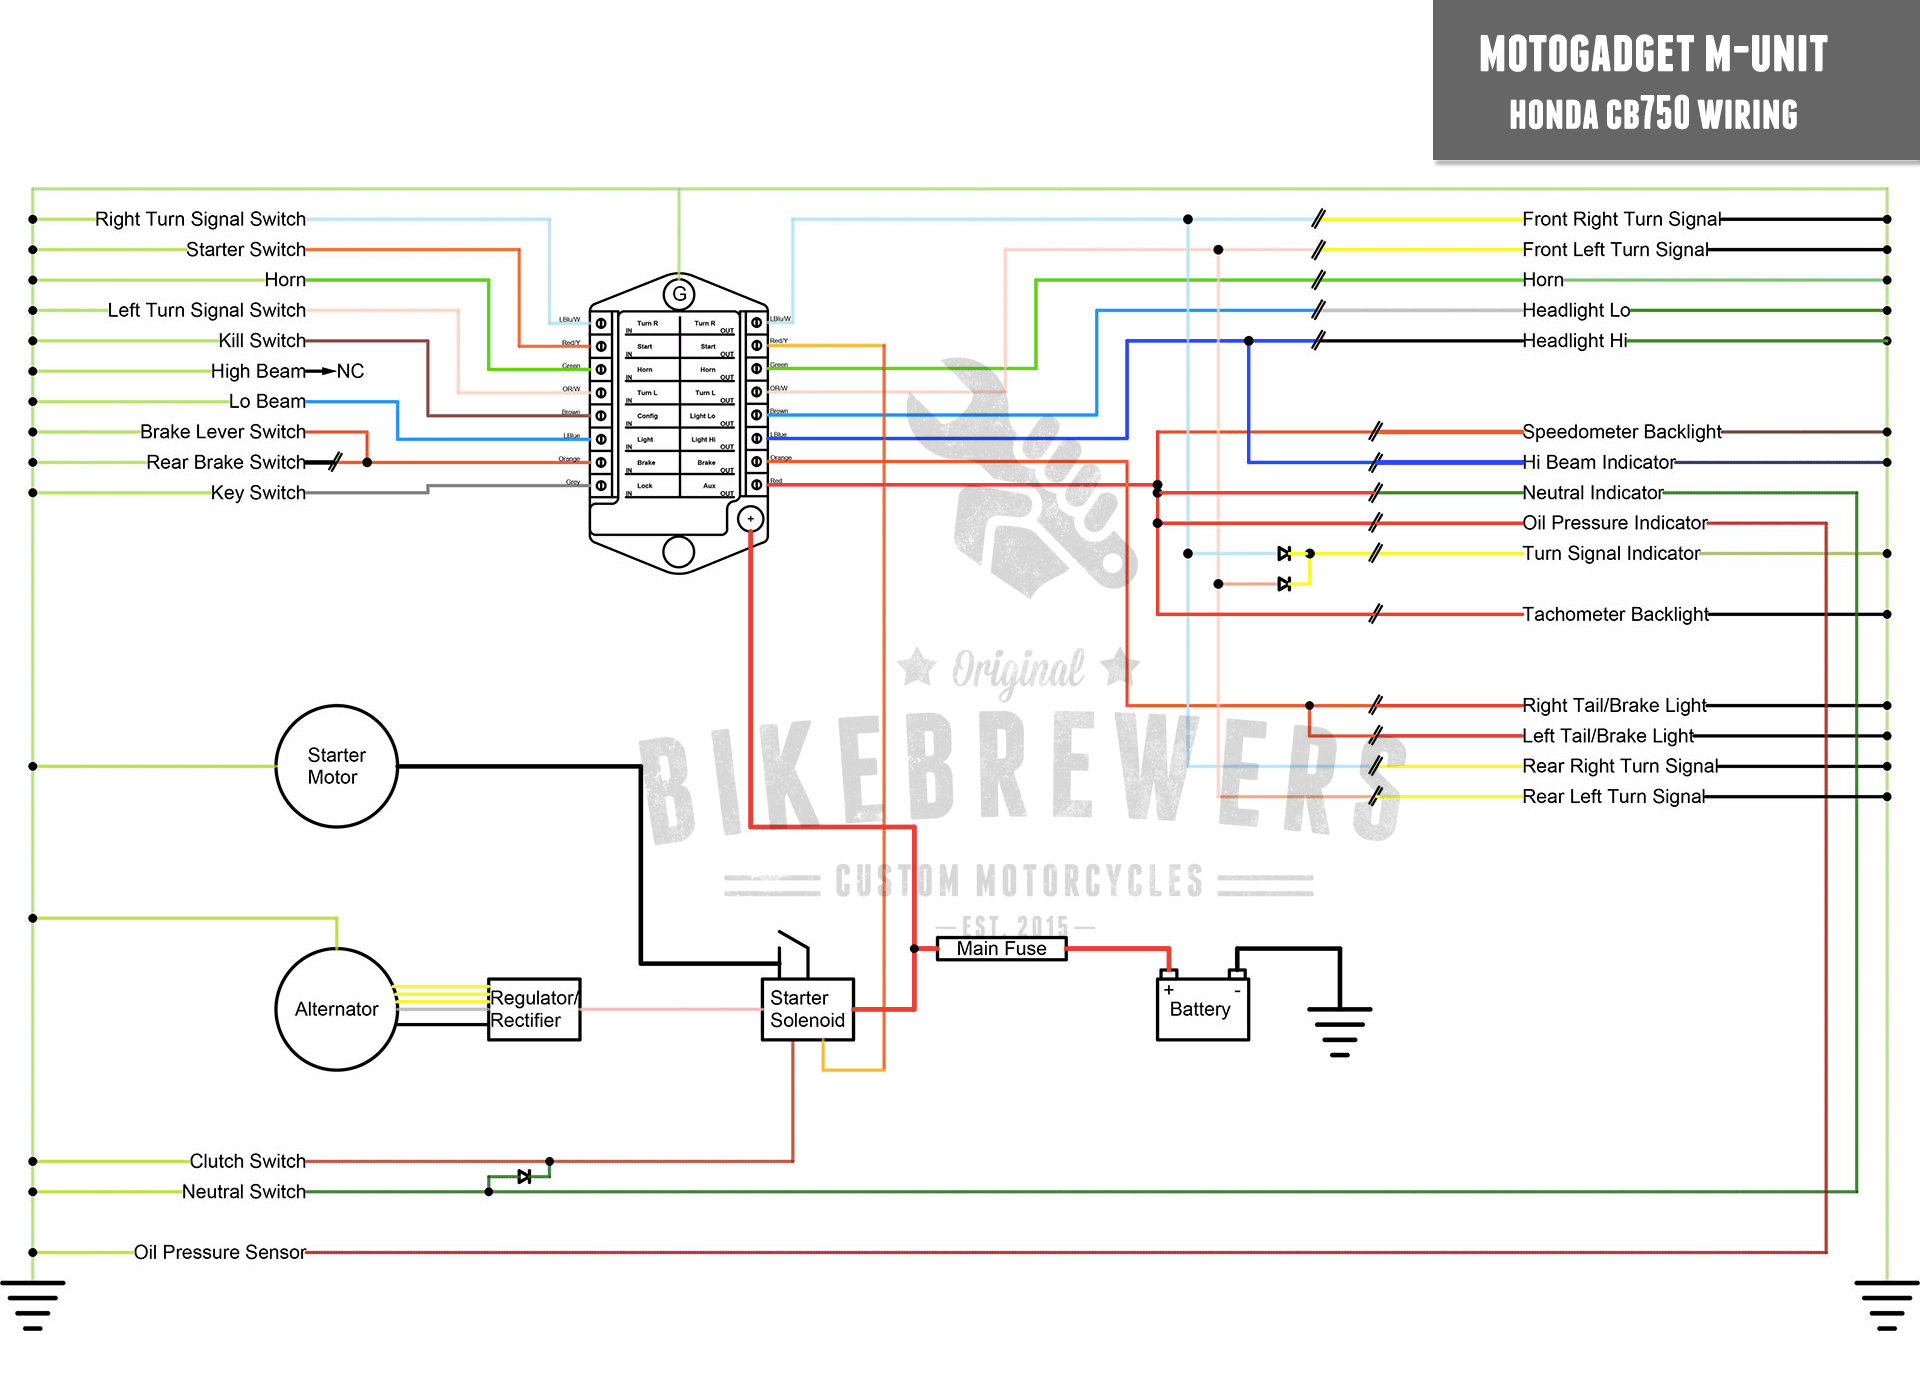 MotoGadget Wiring Honda CB750 motogadget m unit wiring bikebrewers com gs550 wiring diagram at fashall.co